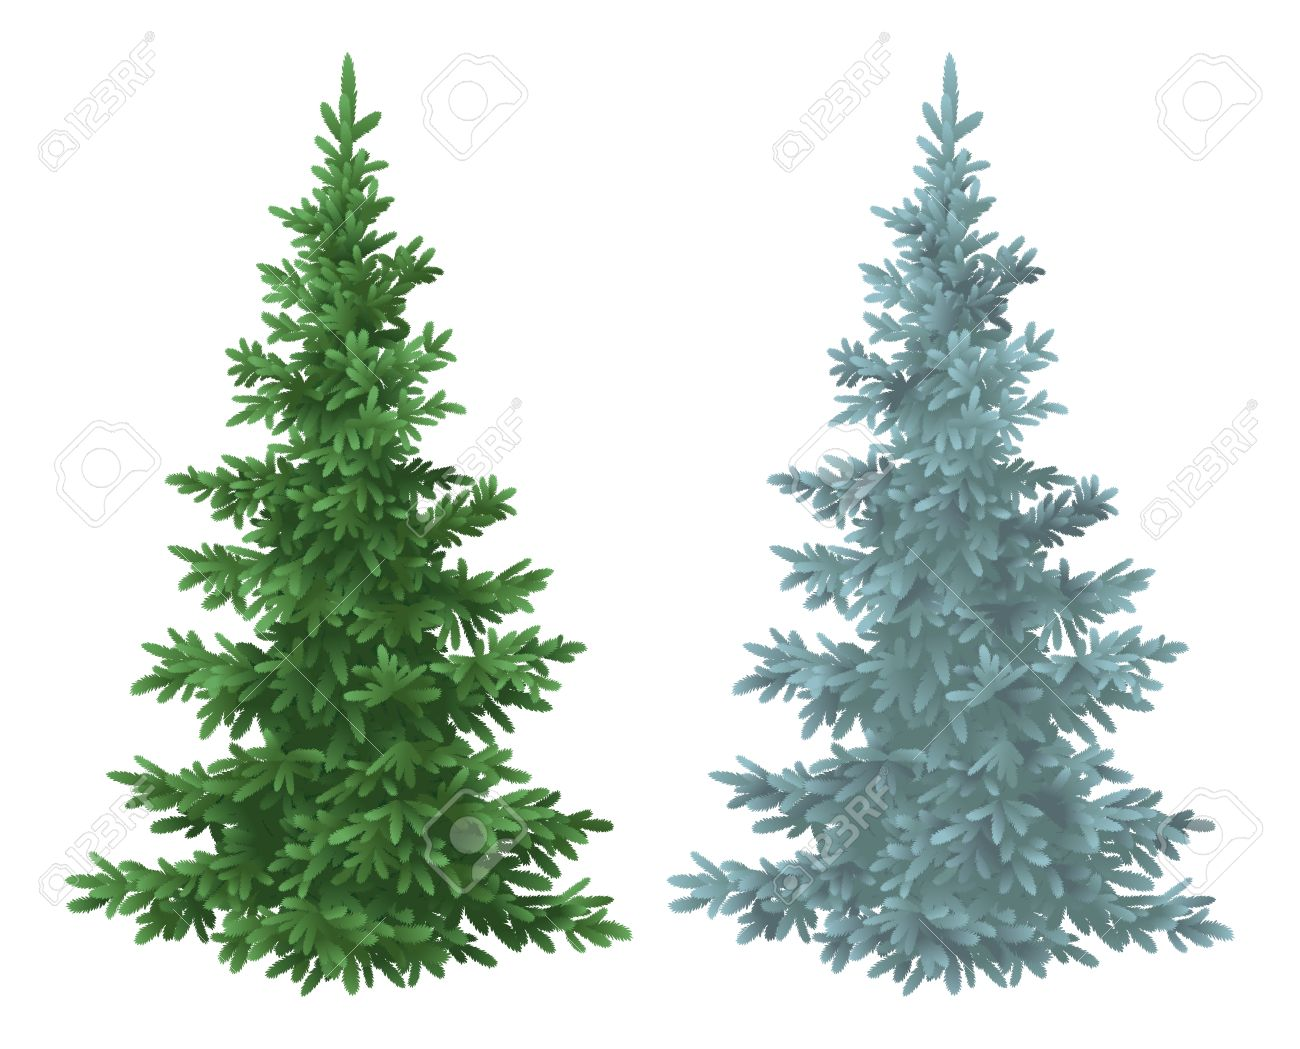 Green and blue Christmas spruce fir trees isolated on white background - 30731857